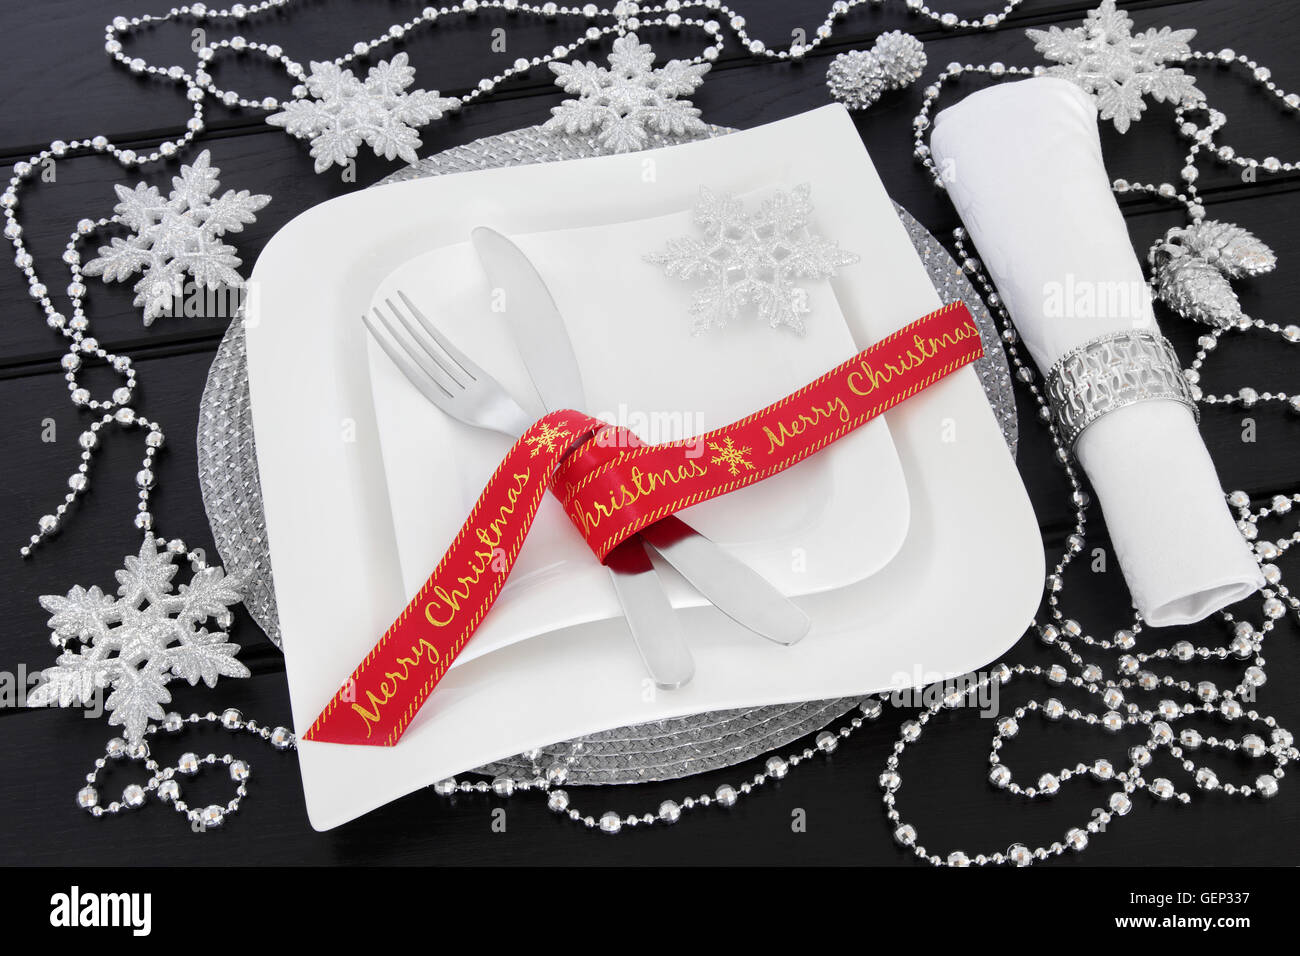 Modern Christmas Table Setting With Square Porcelain